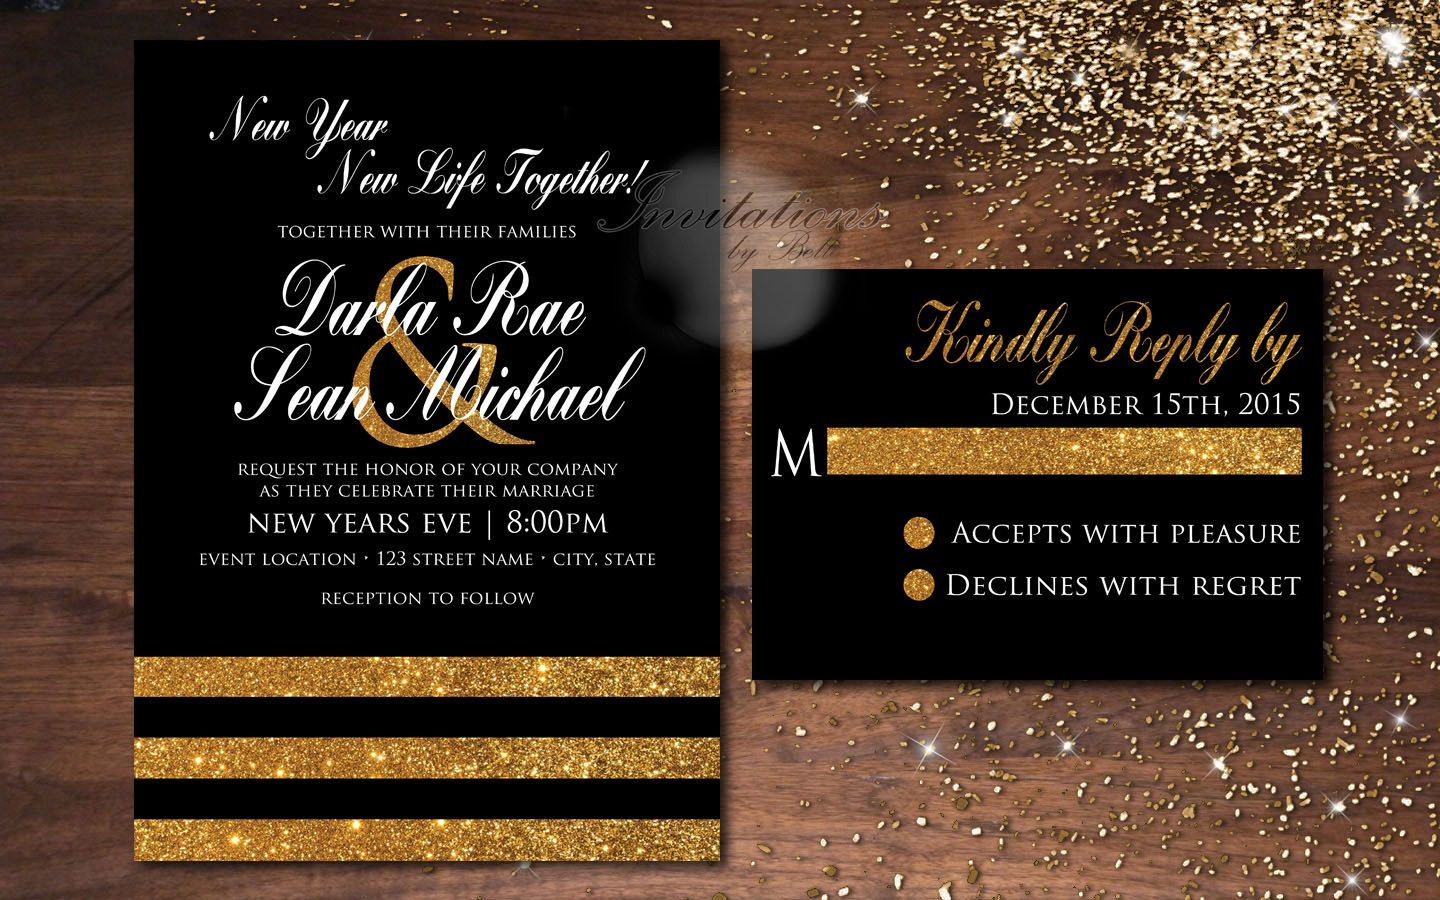 New Years Black And Gold Glitter White Eve Wedding Elegant Formal Invitation